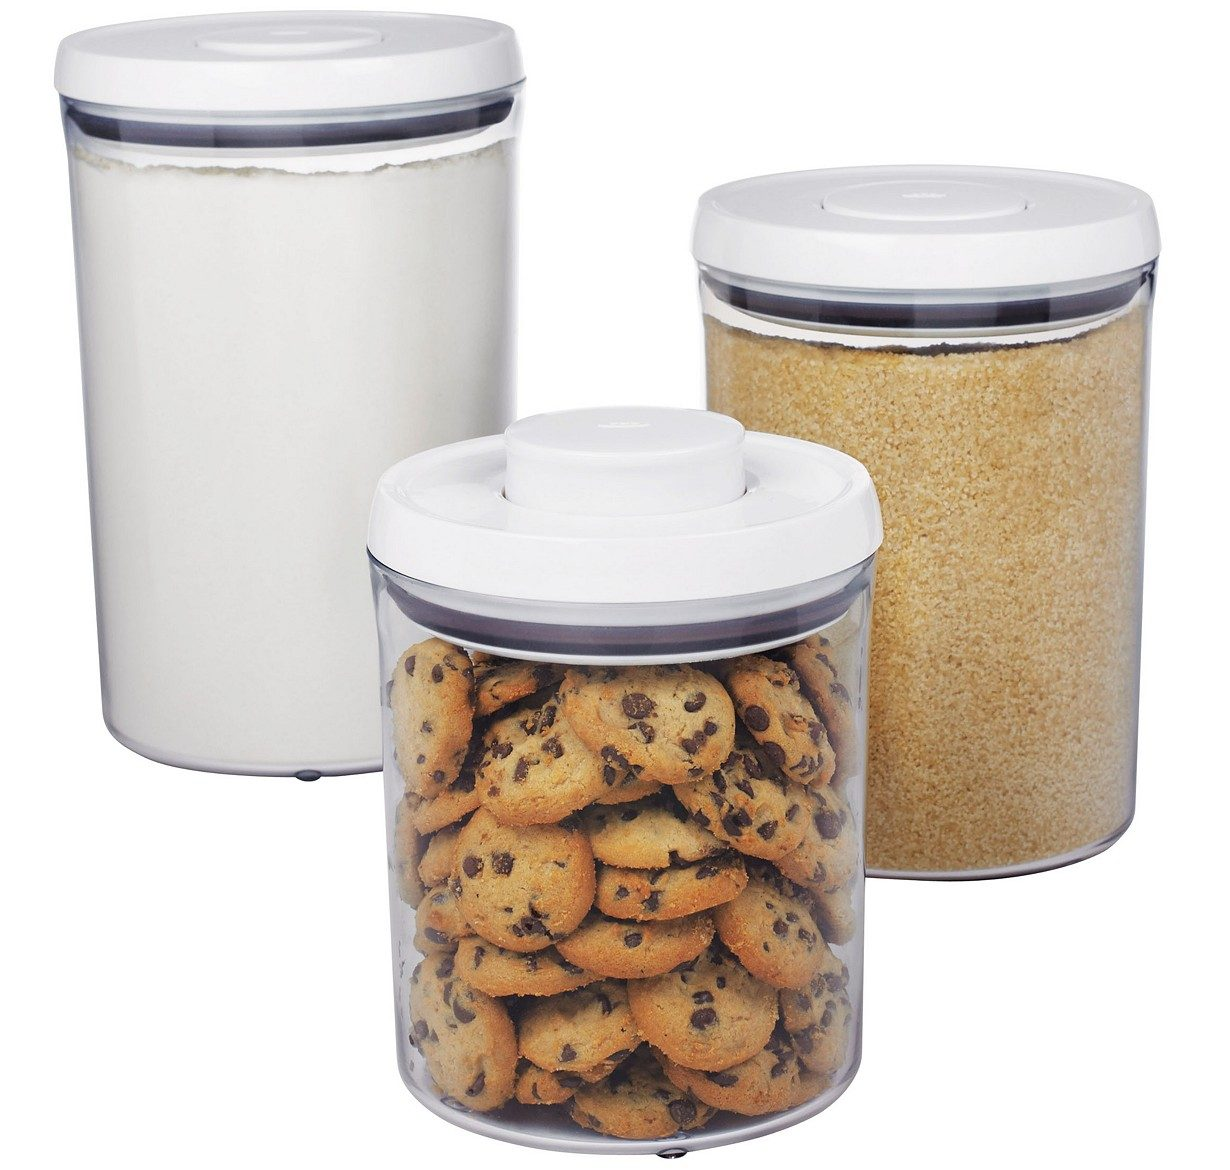 OXO round containers3 pieces with food in them